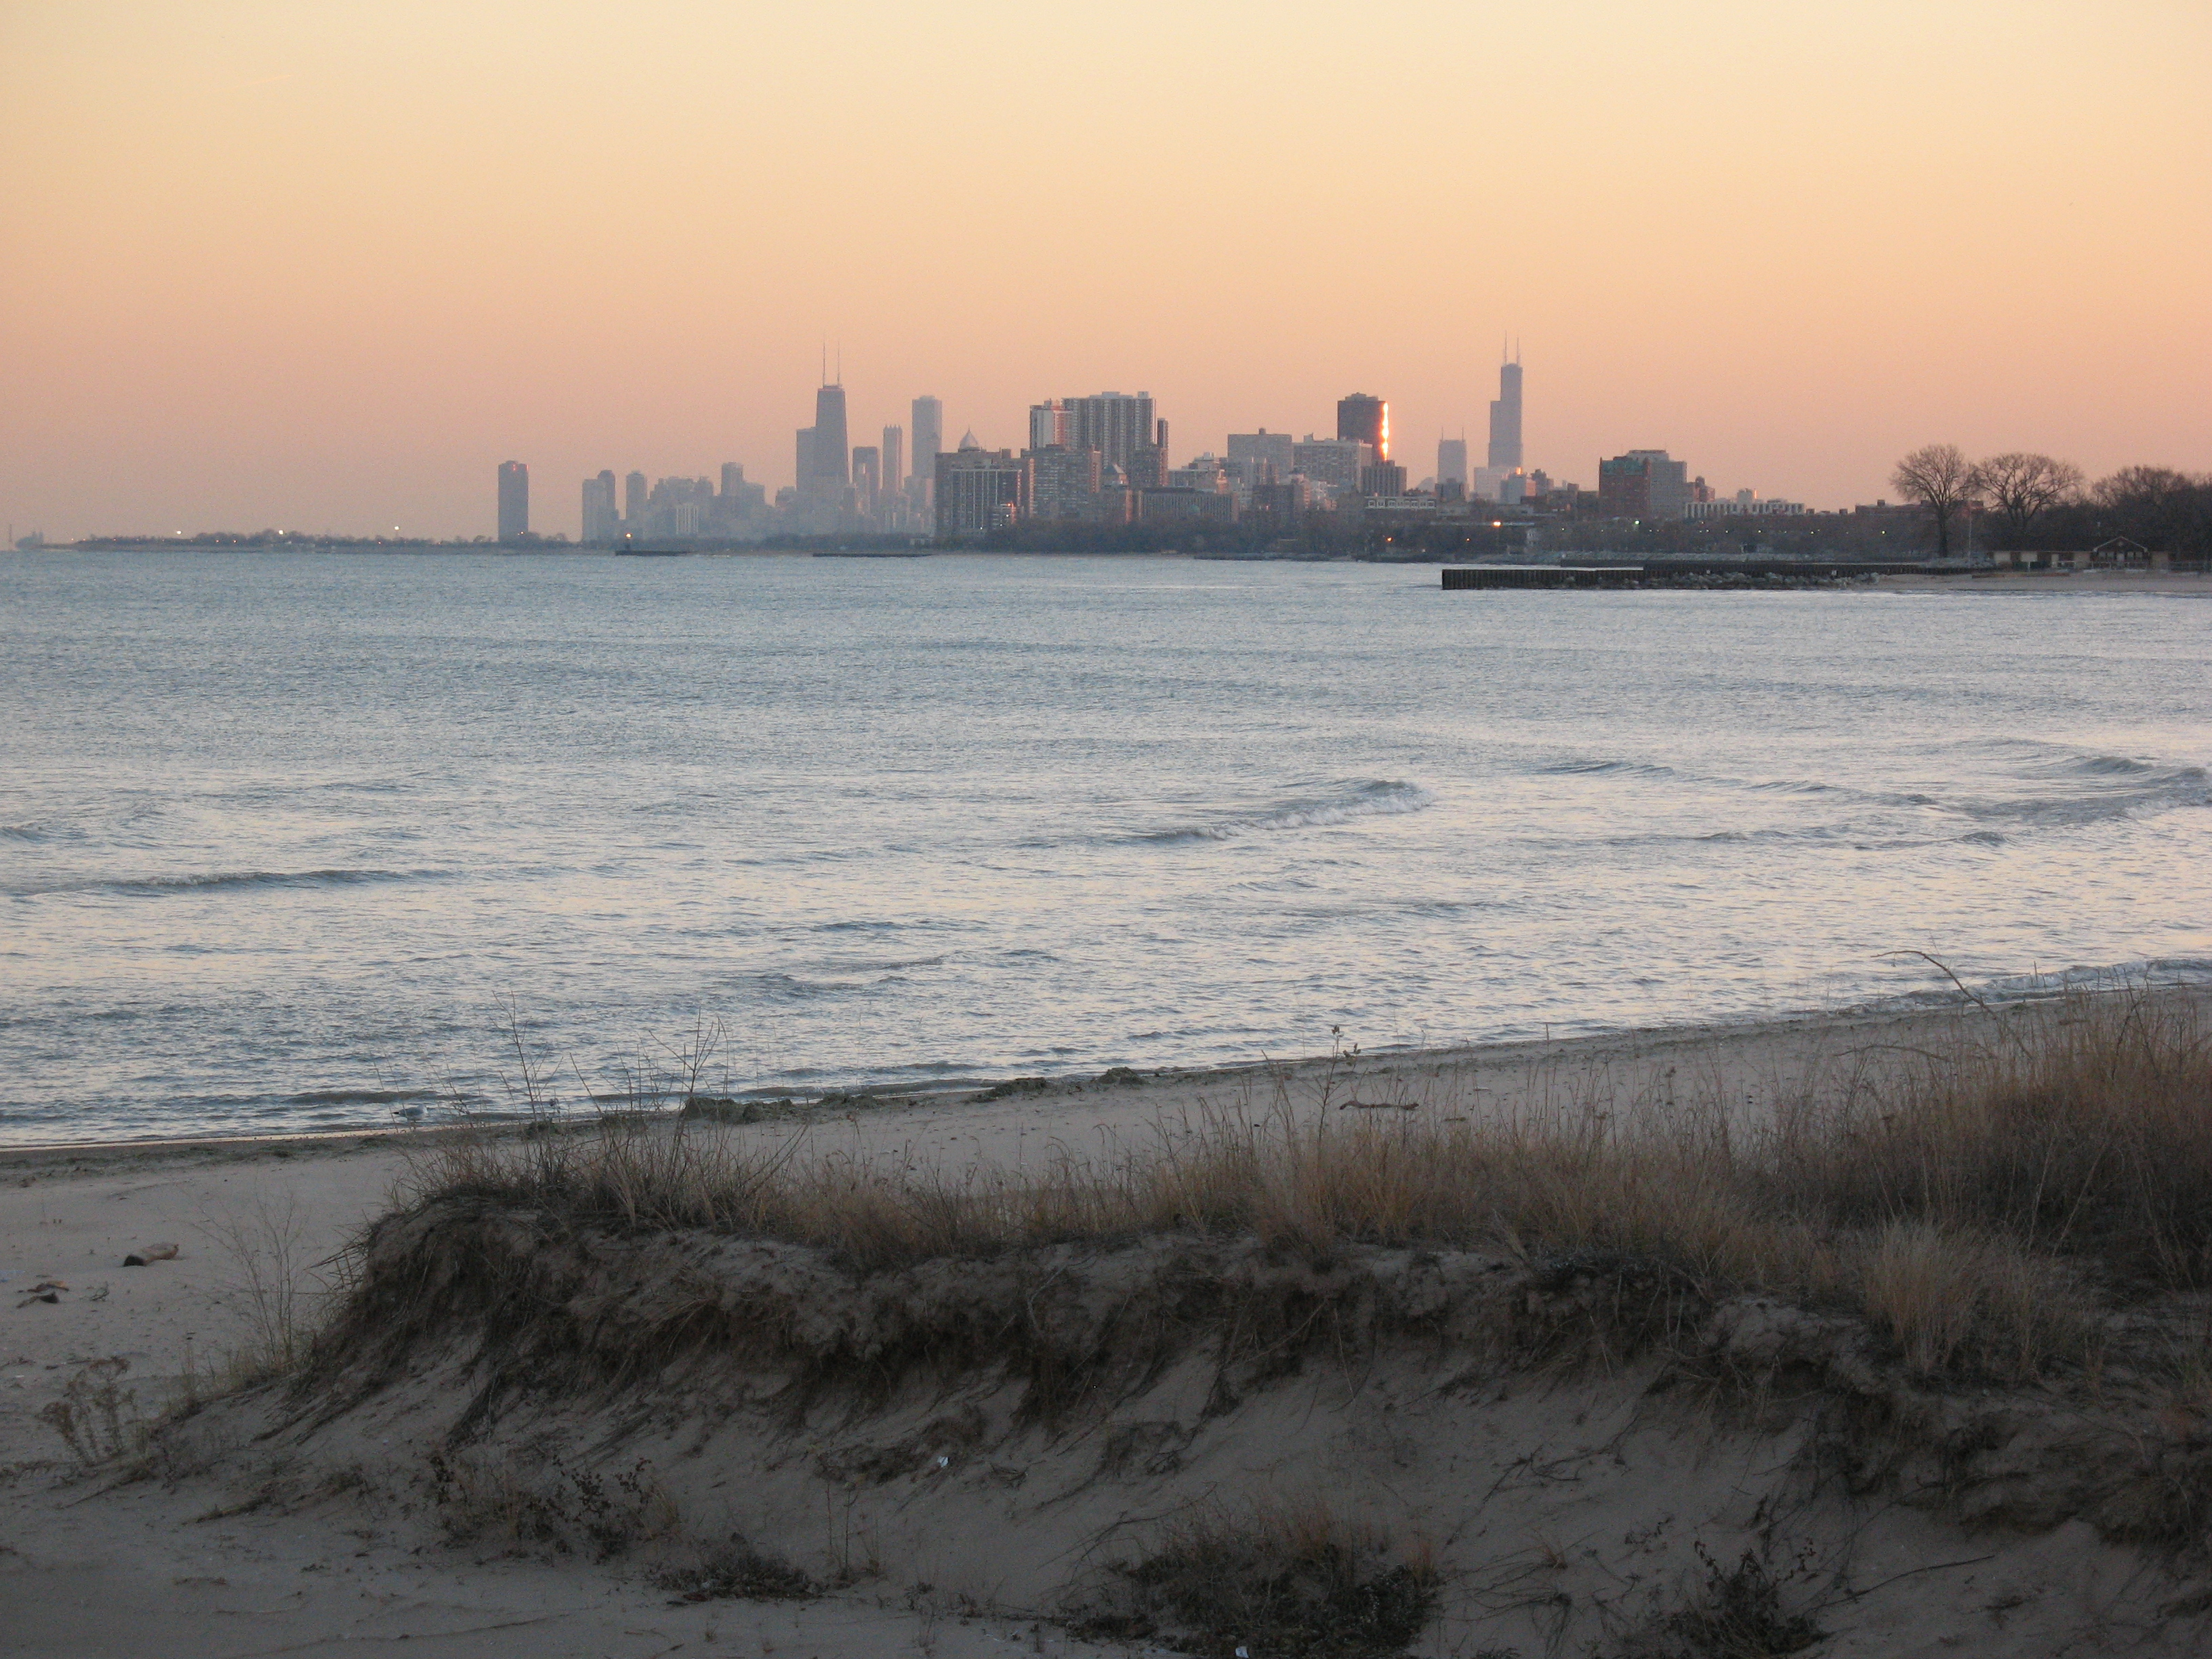 File:Chicago skyline at sunset, view from Evanston.jpg - Wikimedia ...